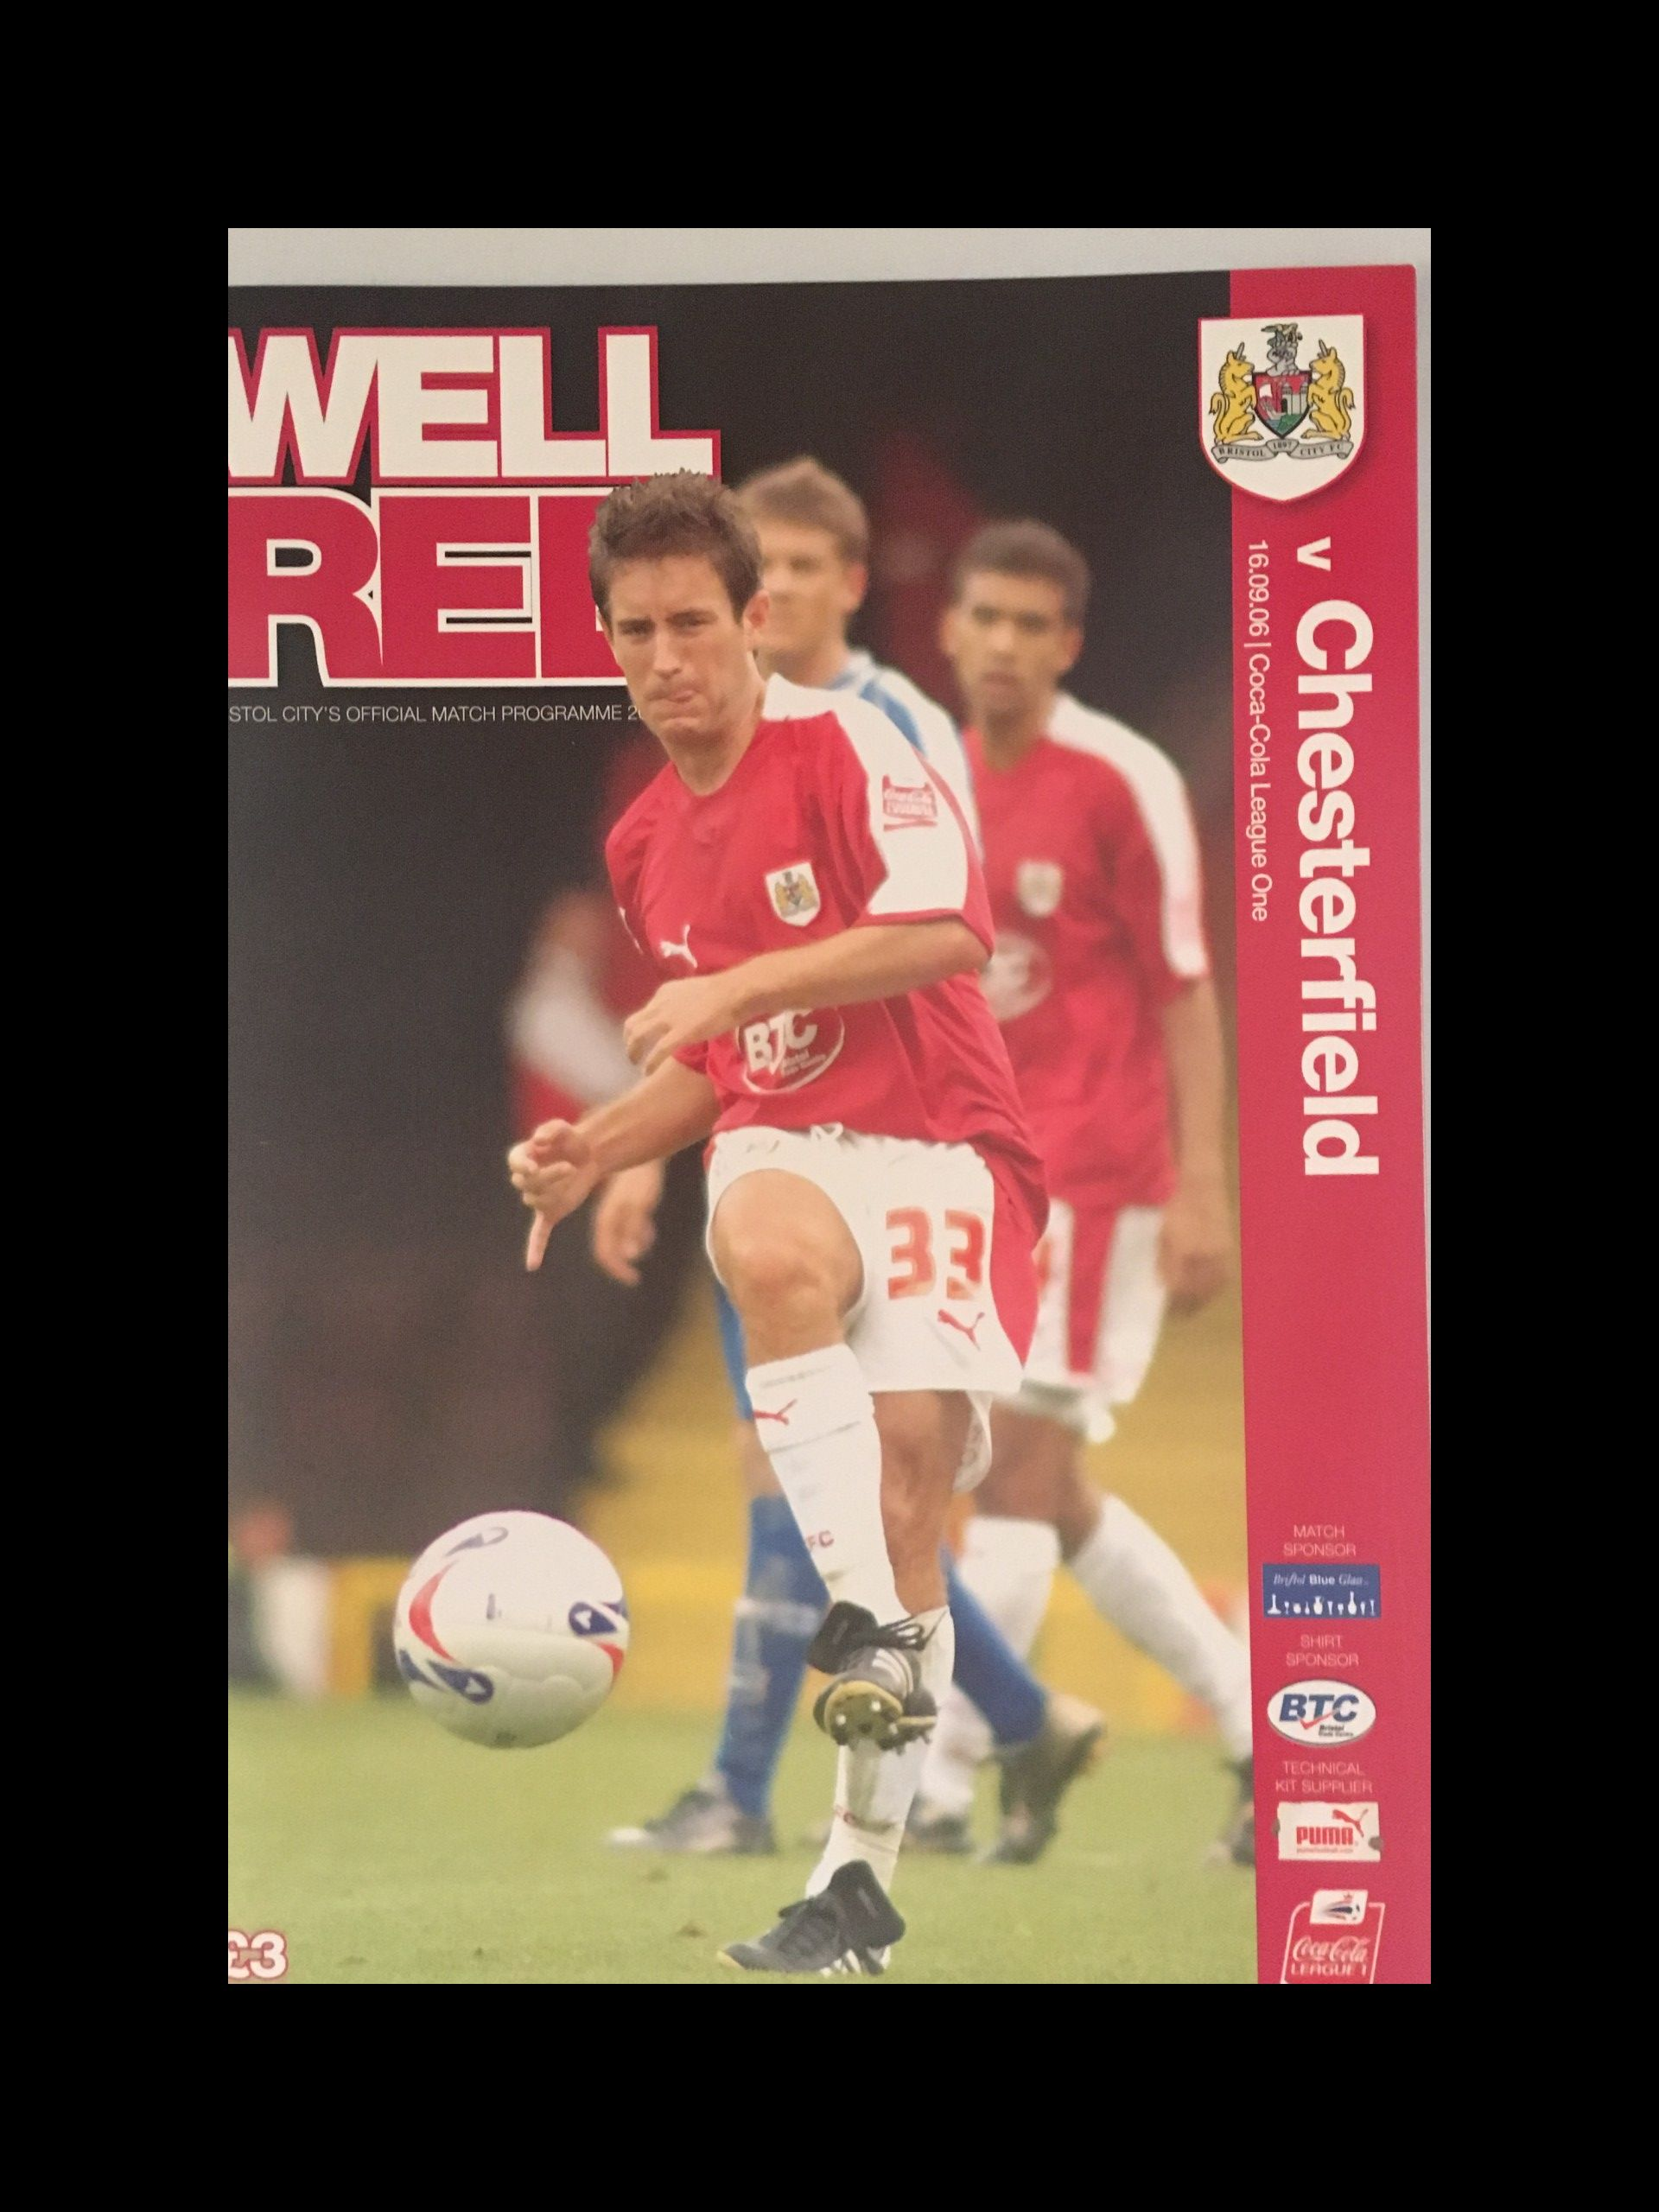 Bristol City v Chesterfield 16-09-2006 Programme